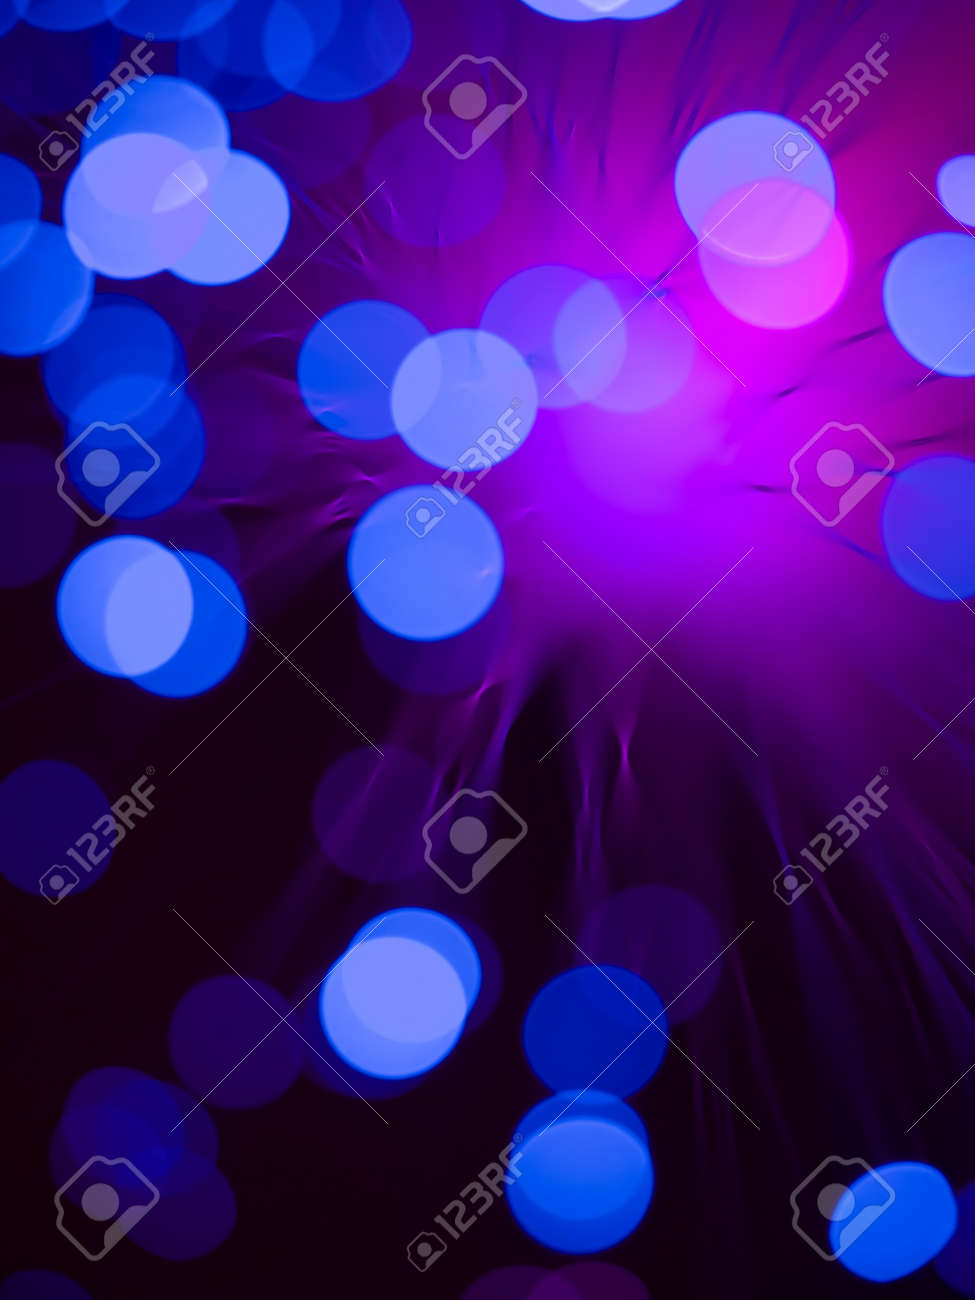 Abstract Wallpaper With Macro Of A Fiber Optics Light Wand With